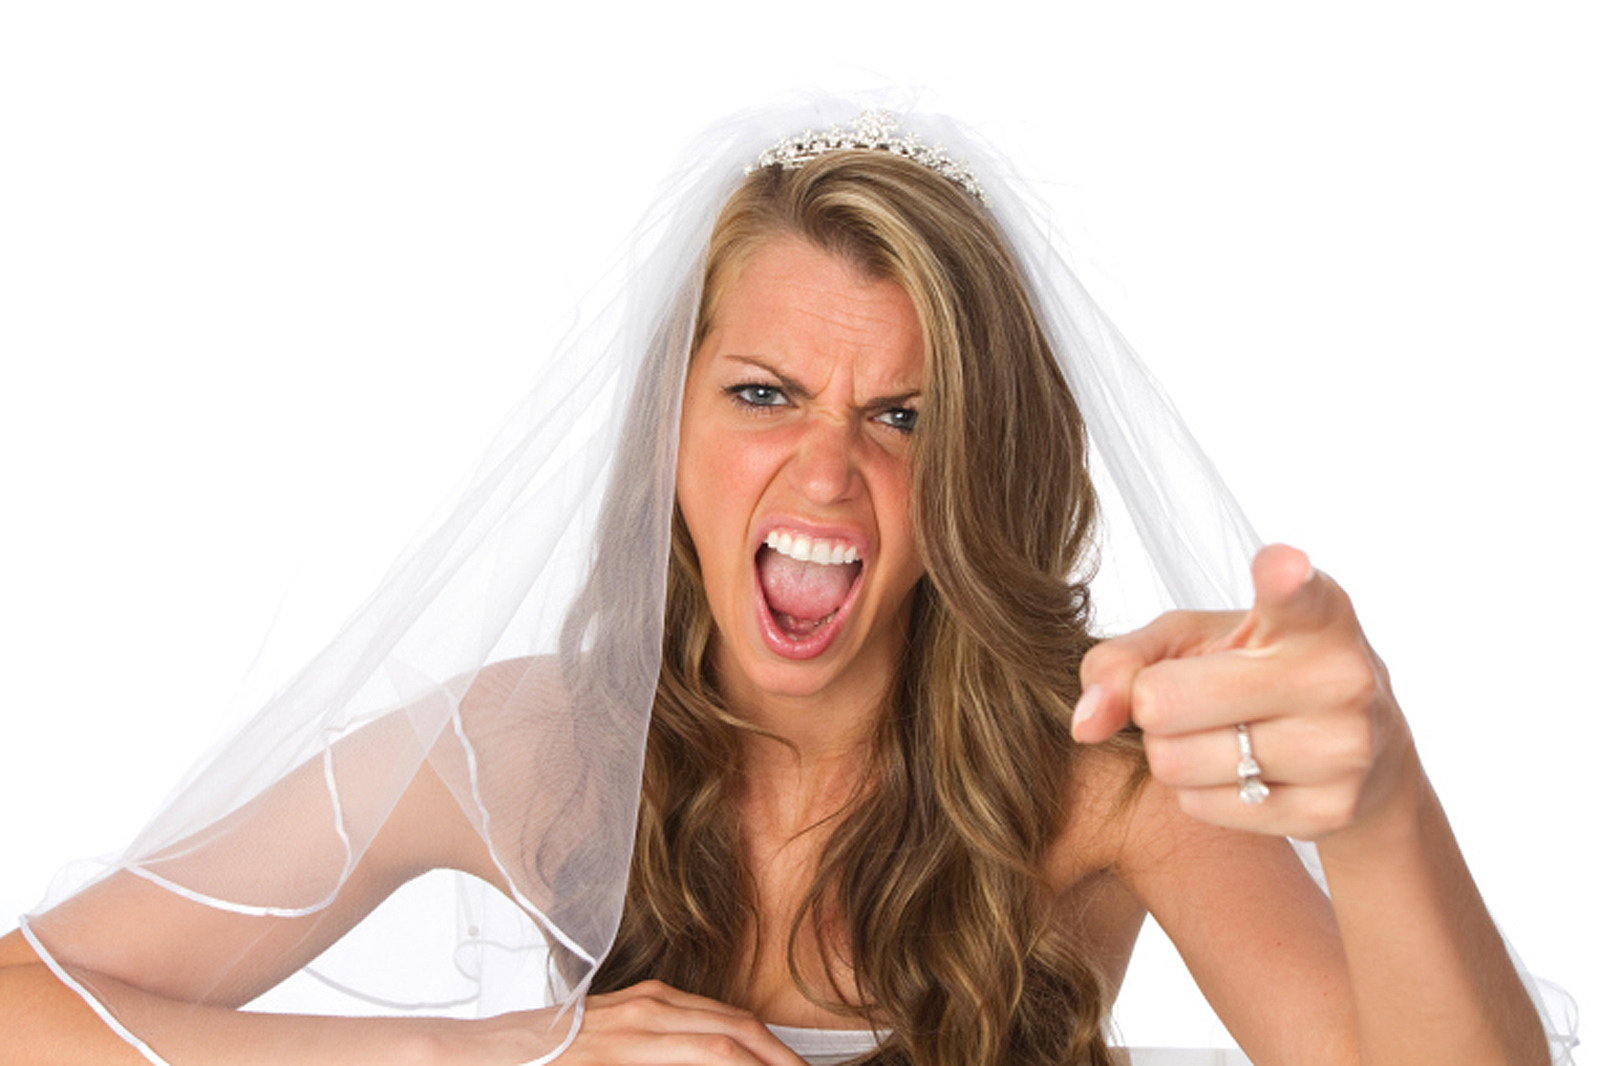 Have any bridezillas gotten divorced and dating